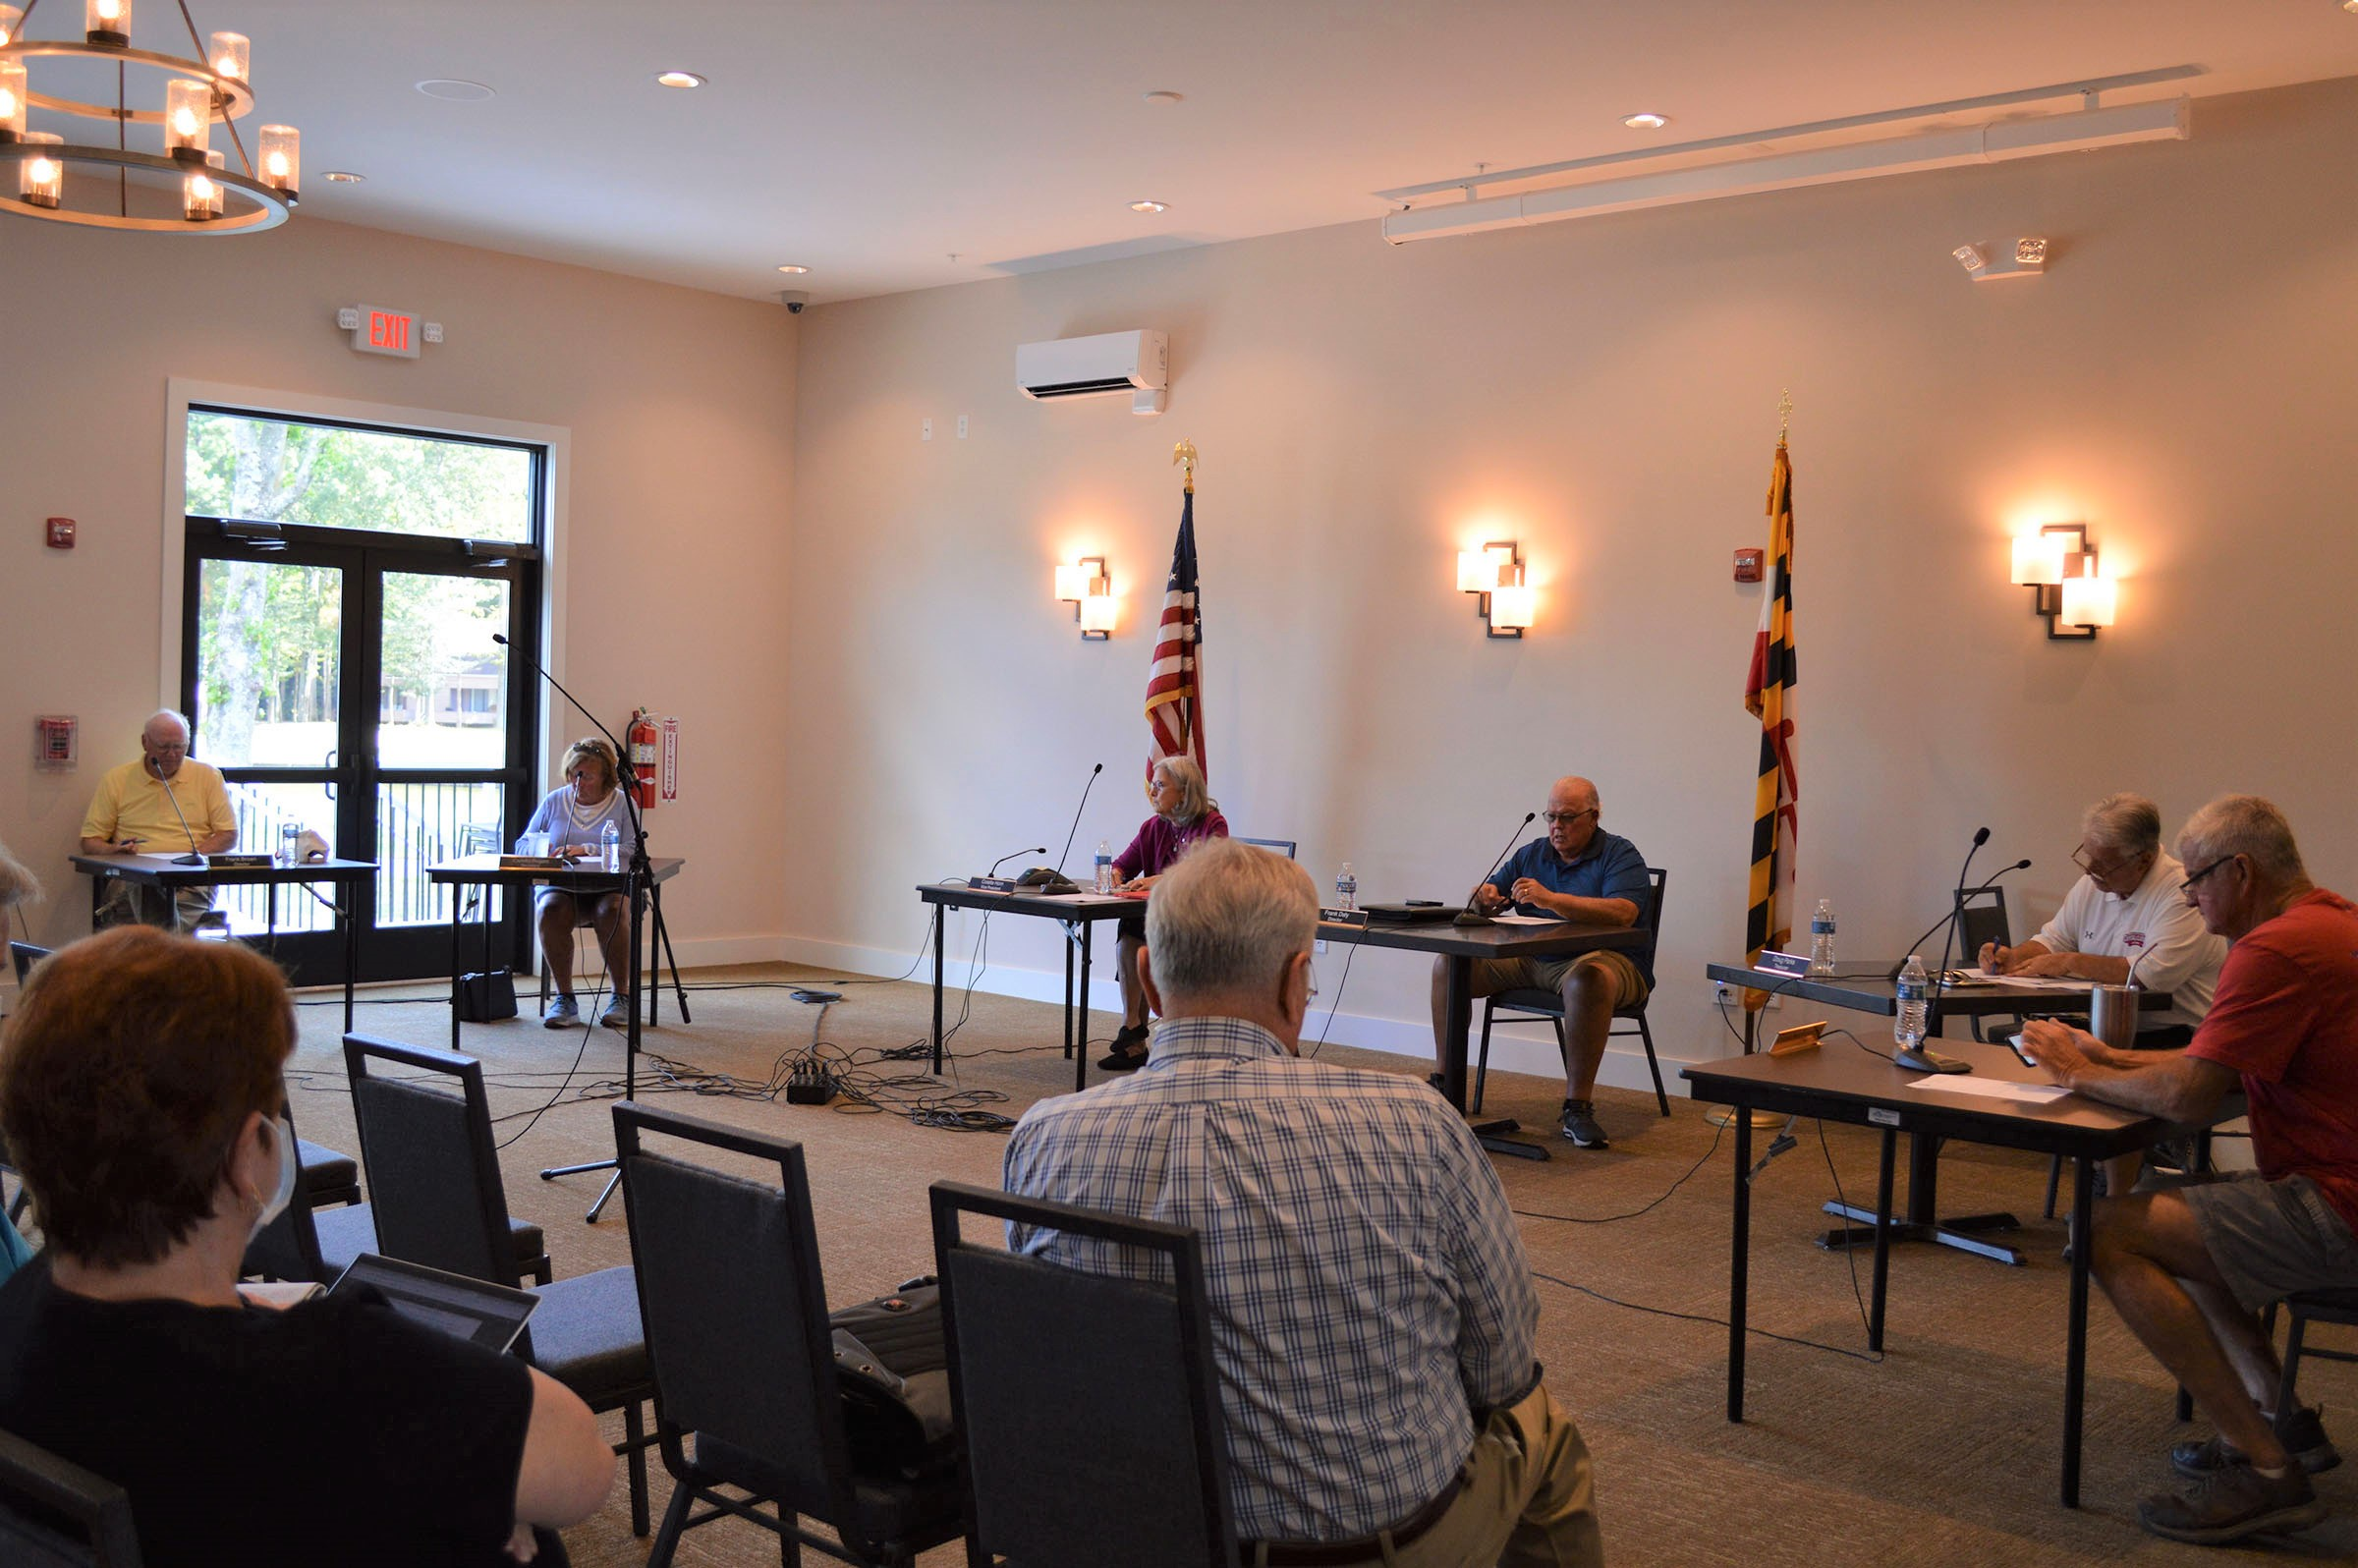 Council of Ocean Pines to redo the election;  Board member announces resignation after 'horrific' experience